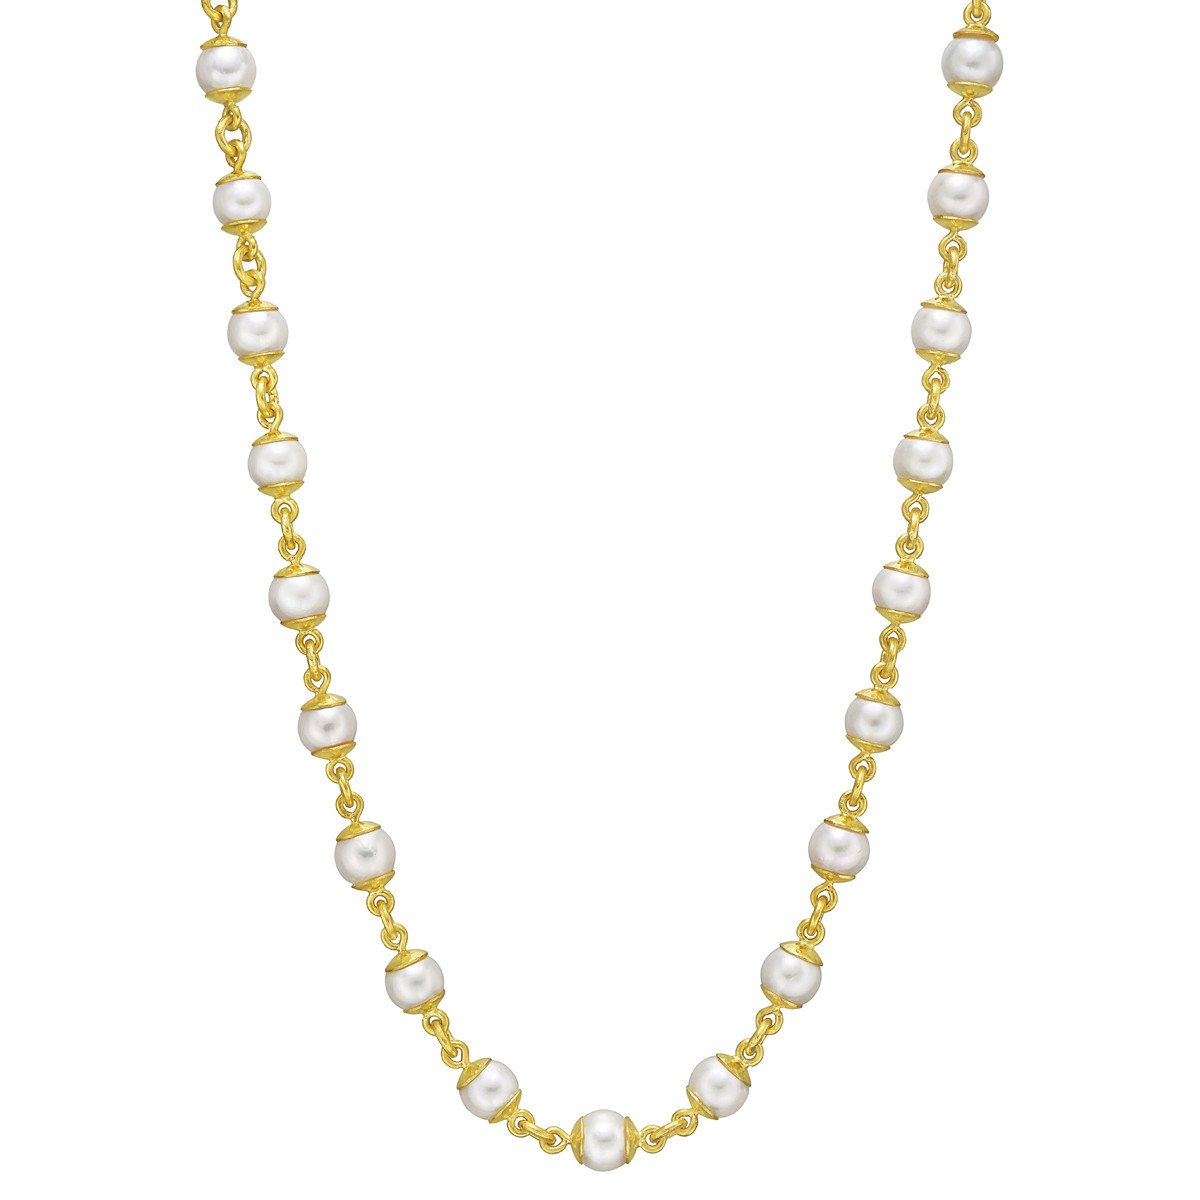 19k Yellow Gold & Akoya Pearl Chain Necklace